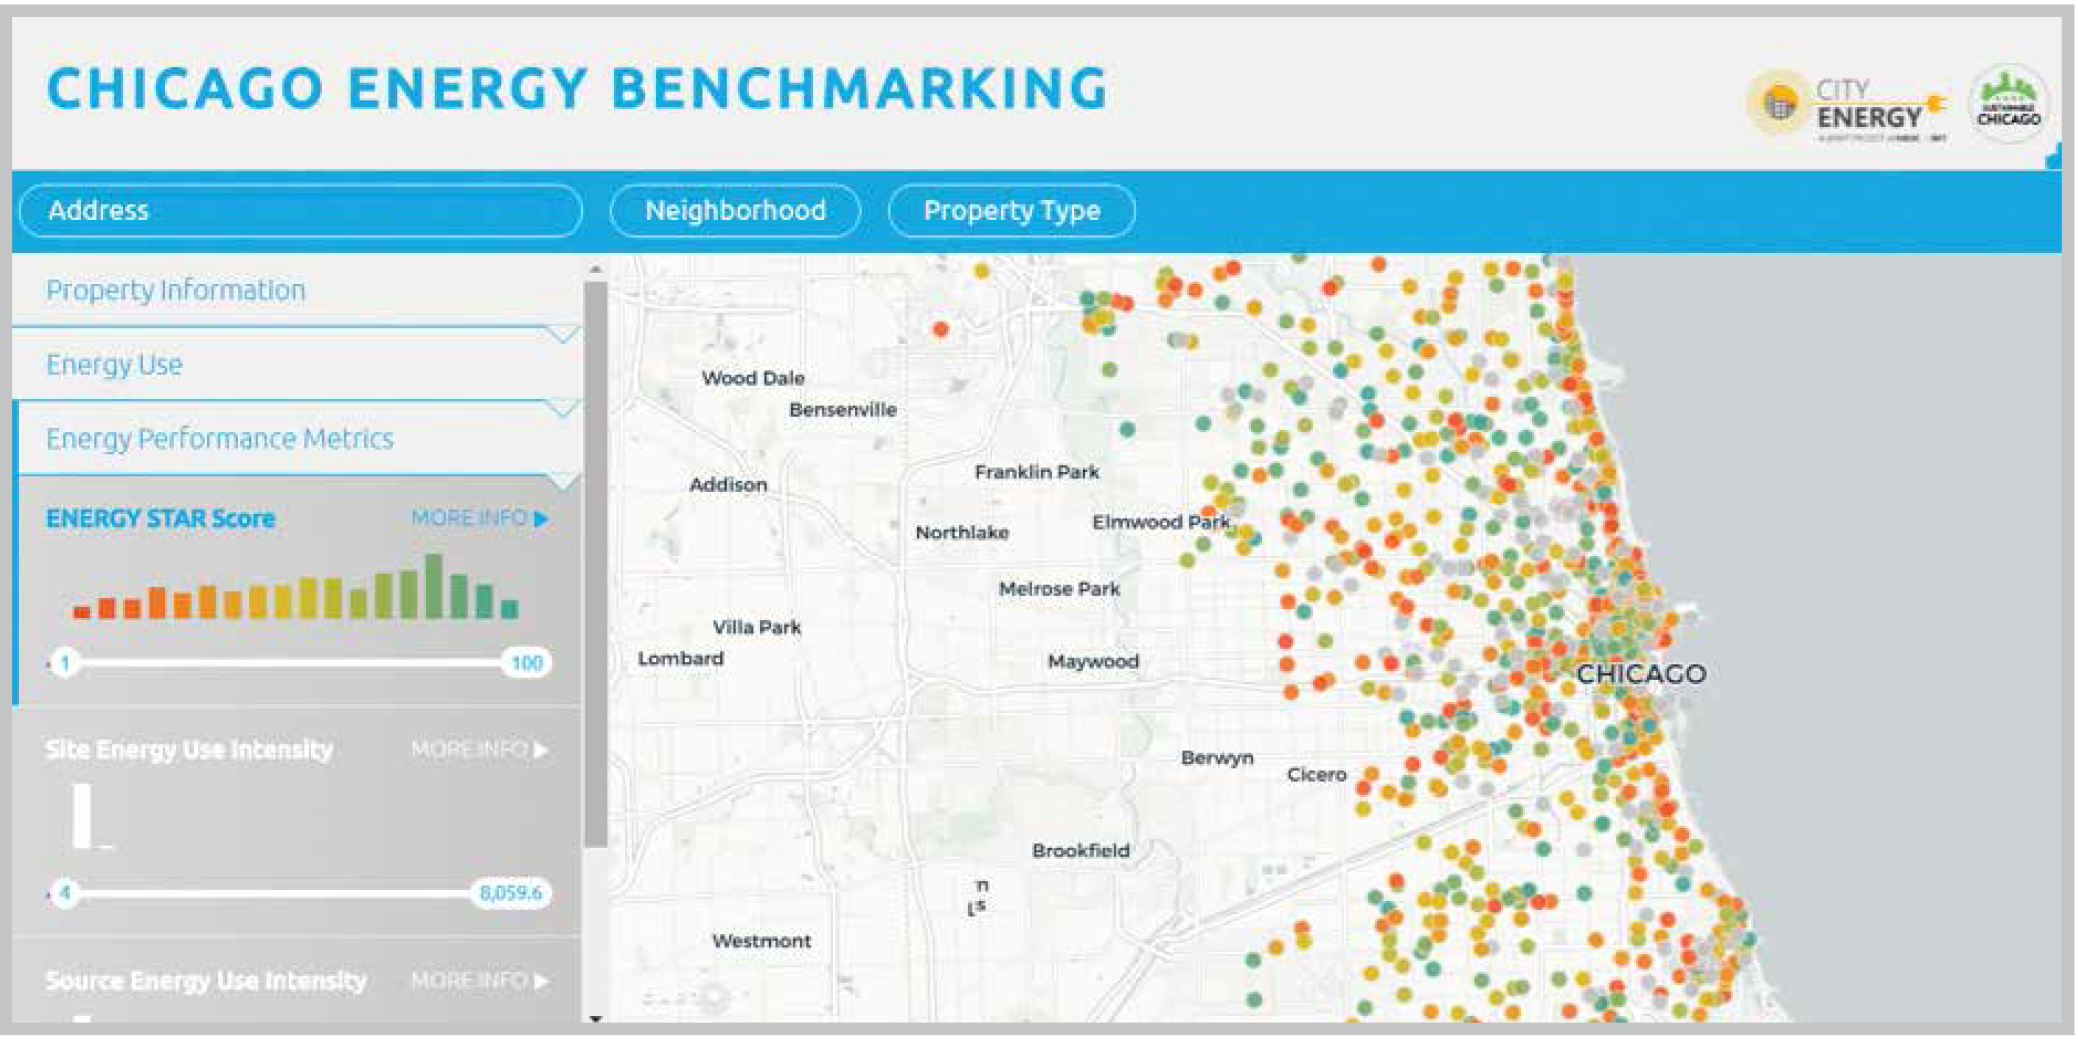 Click to learn more about this graphic (City Energy Project)